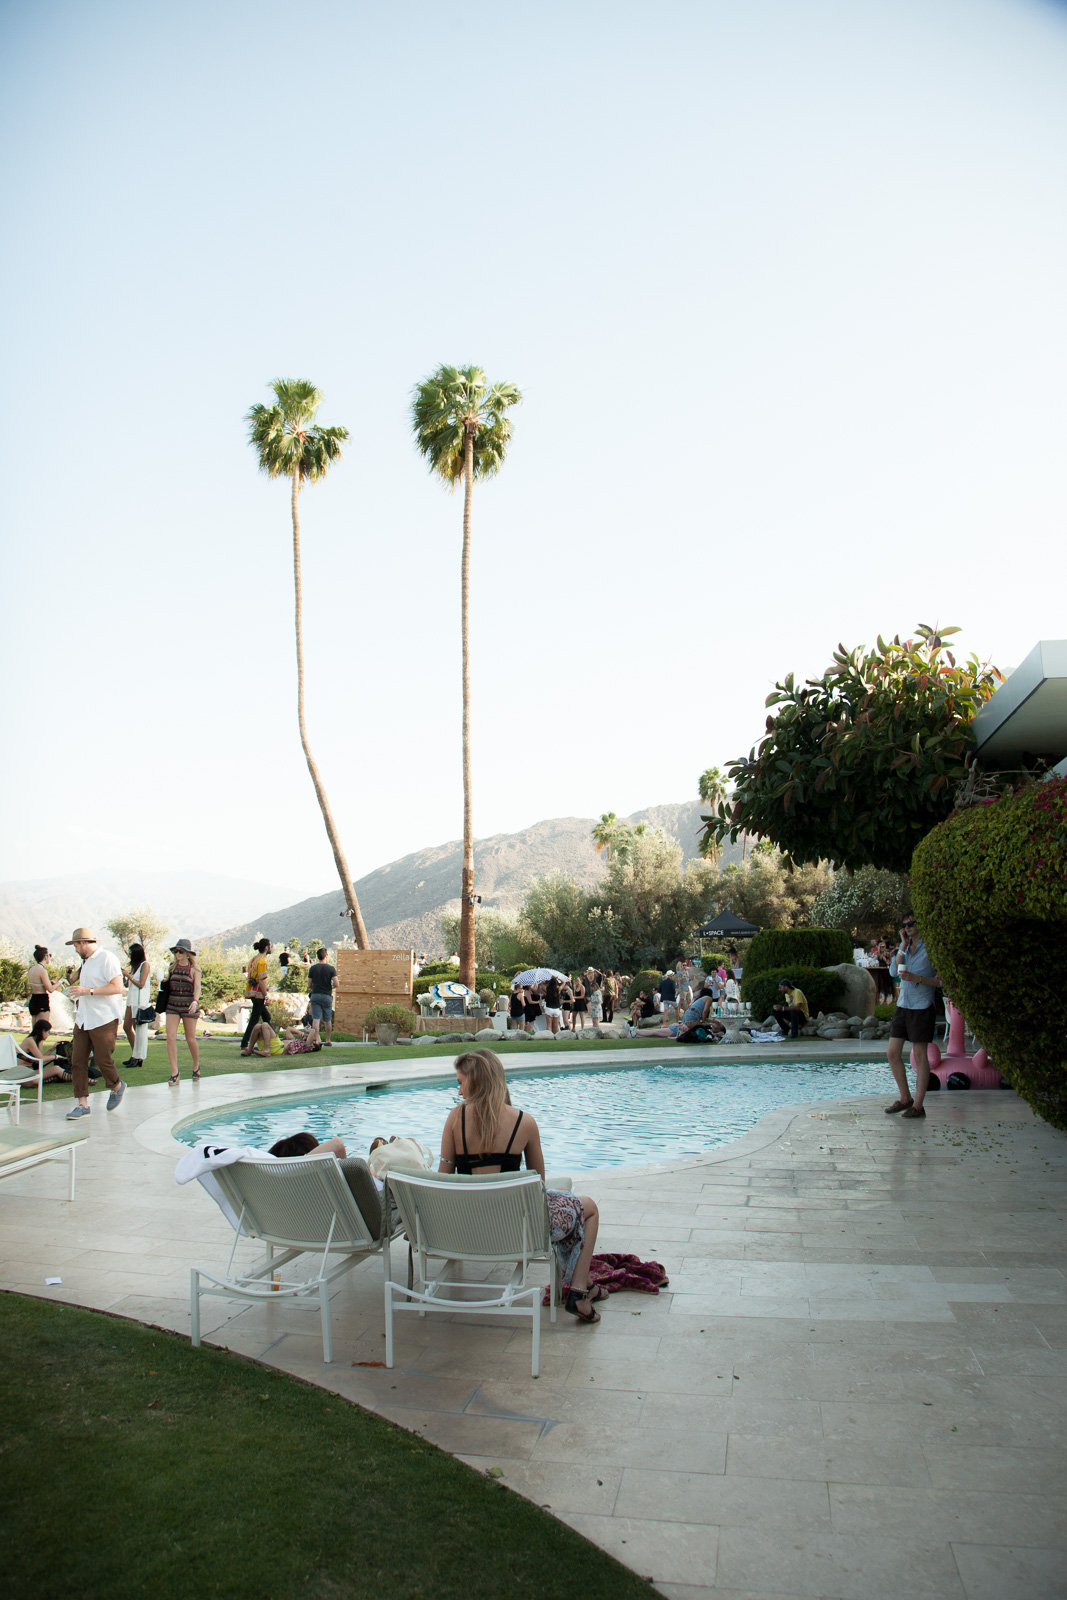 Coachella 2015 The Zoe Report x dolce vita Pool Party hosted by Rachel Zoe on April 11, 2015 at the dFm House in Palm Springs, California